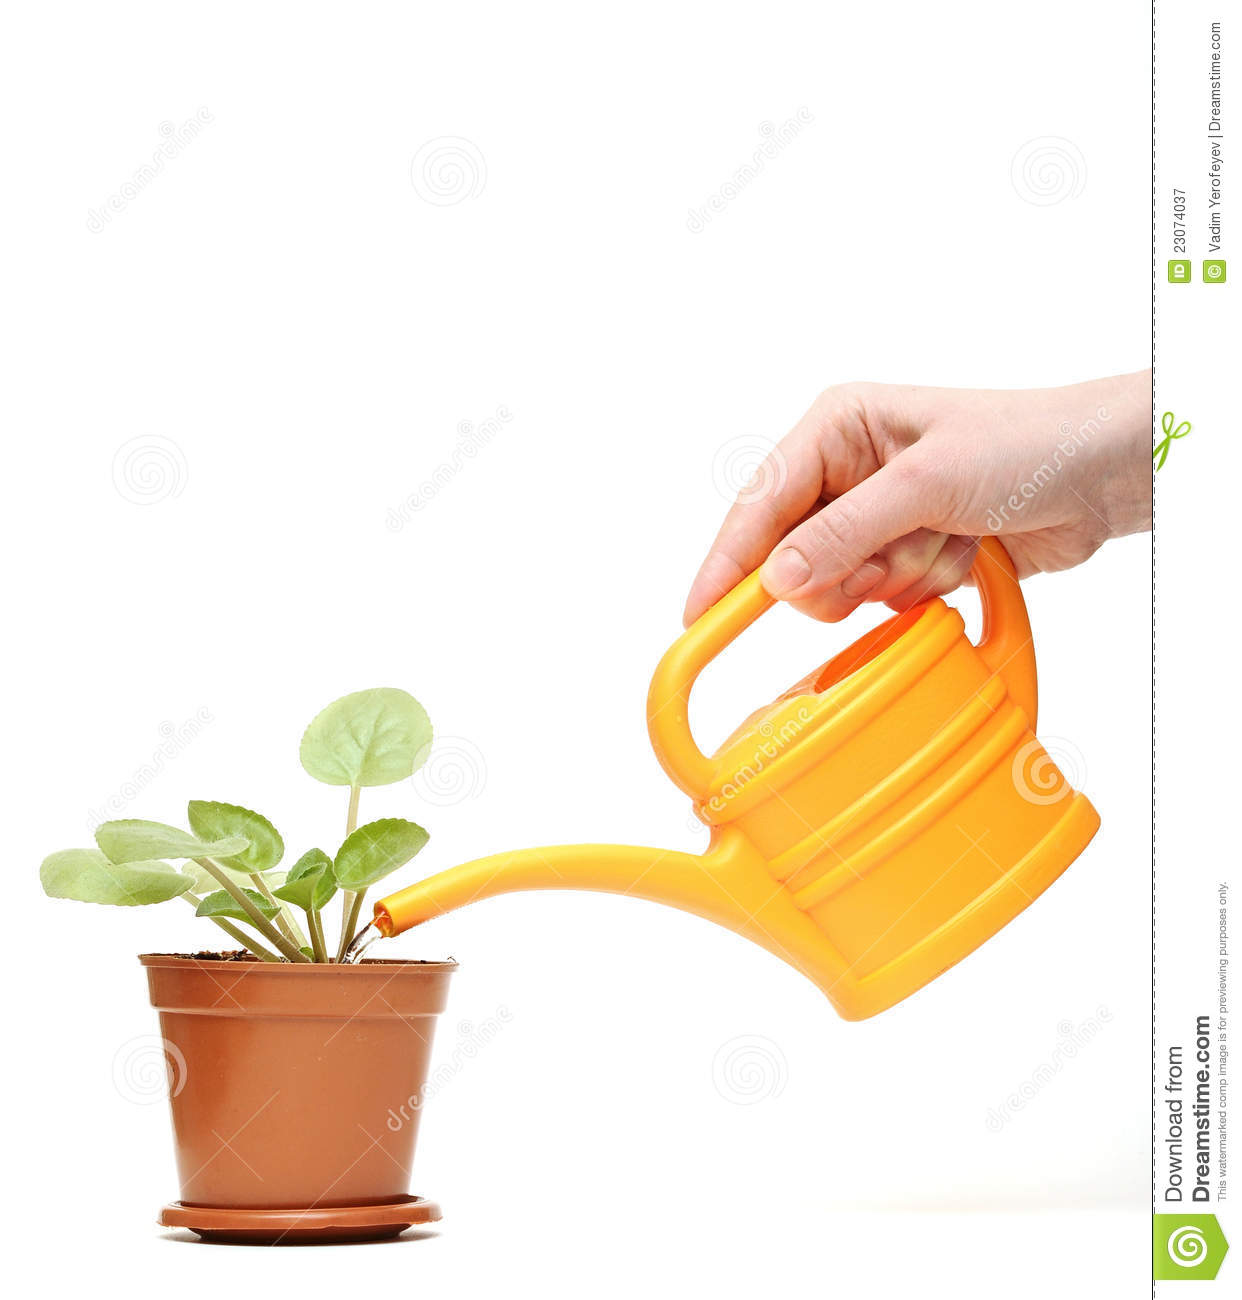 Plant Watering Cans Closeup Hand Watering A Plant With Watering Can Stock